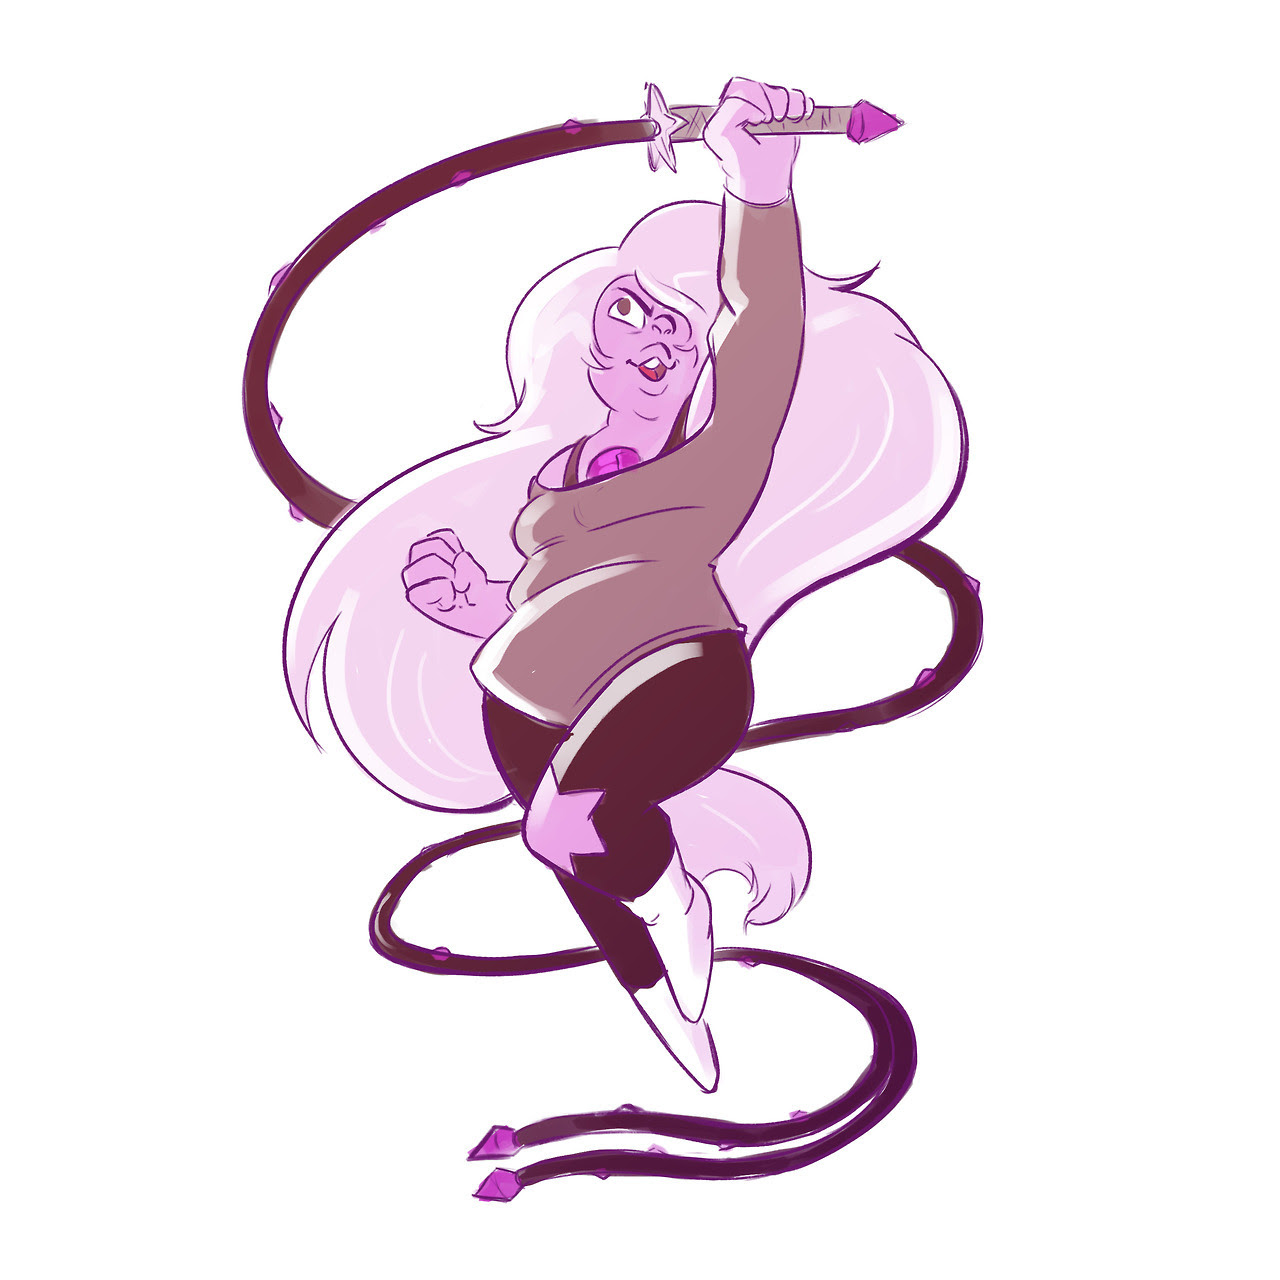 Warm-up of Amethyst from Steven Universe!